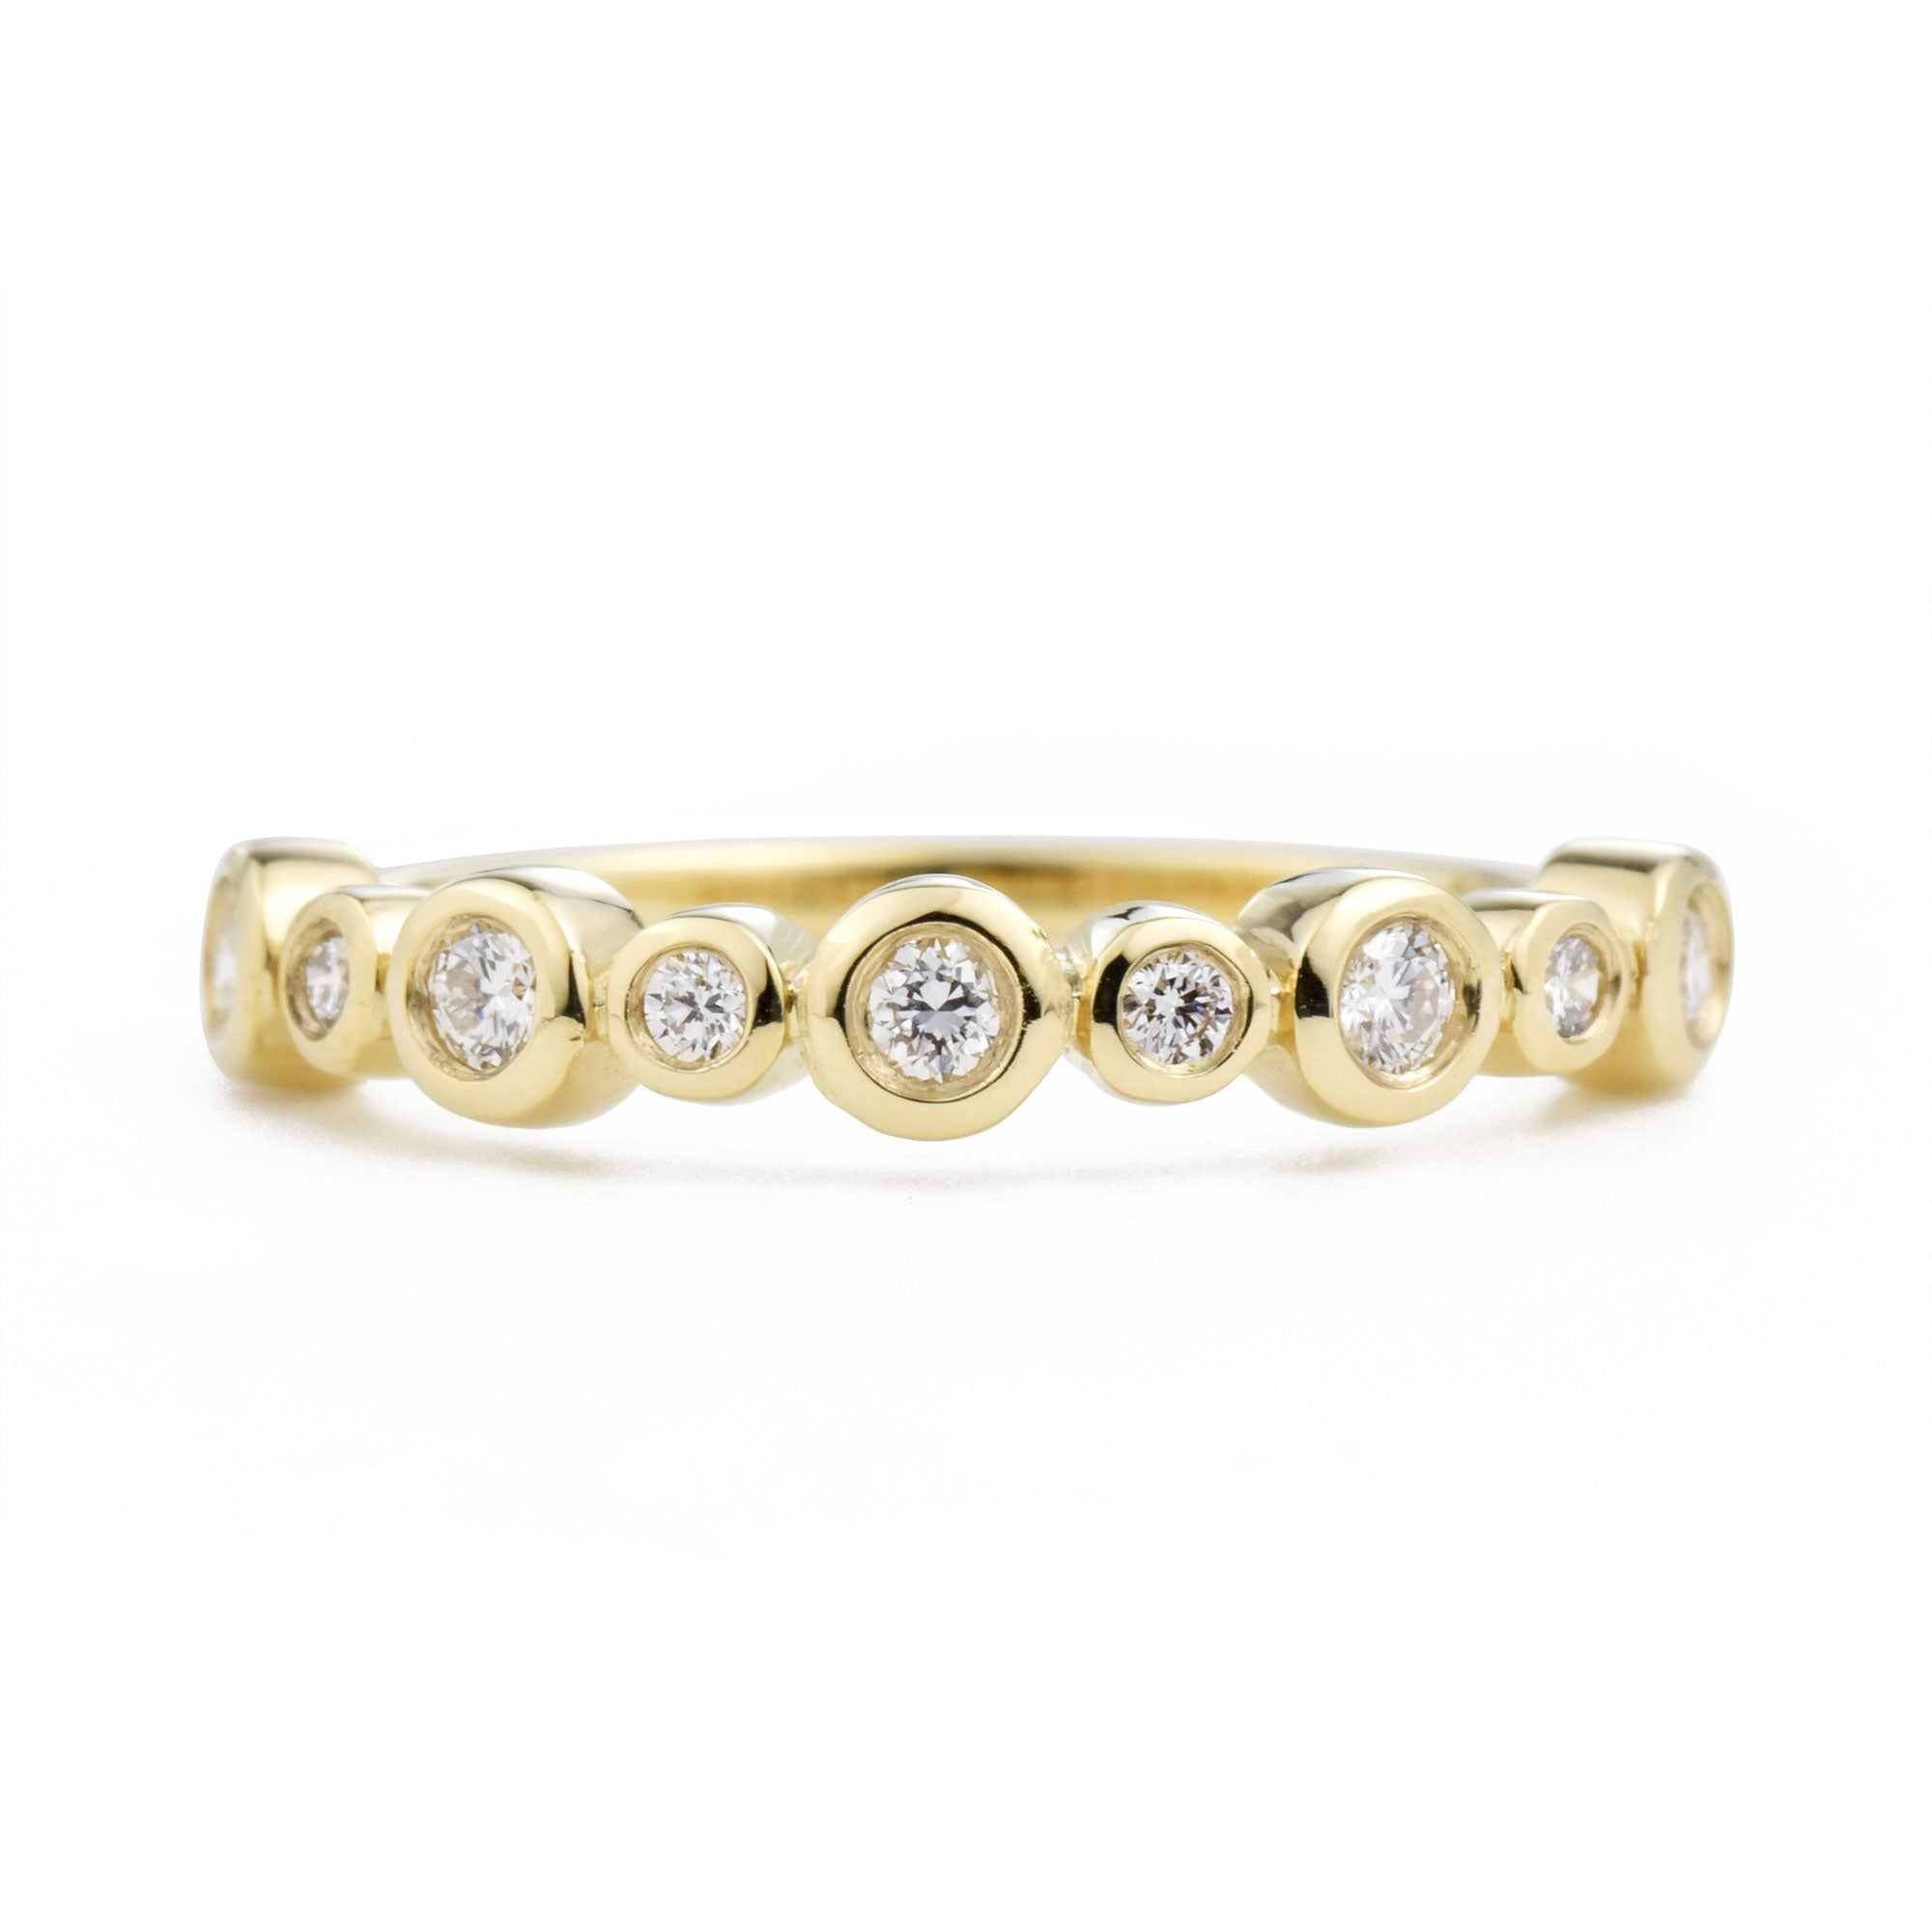 Solstice Diamond Band in yellow gold